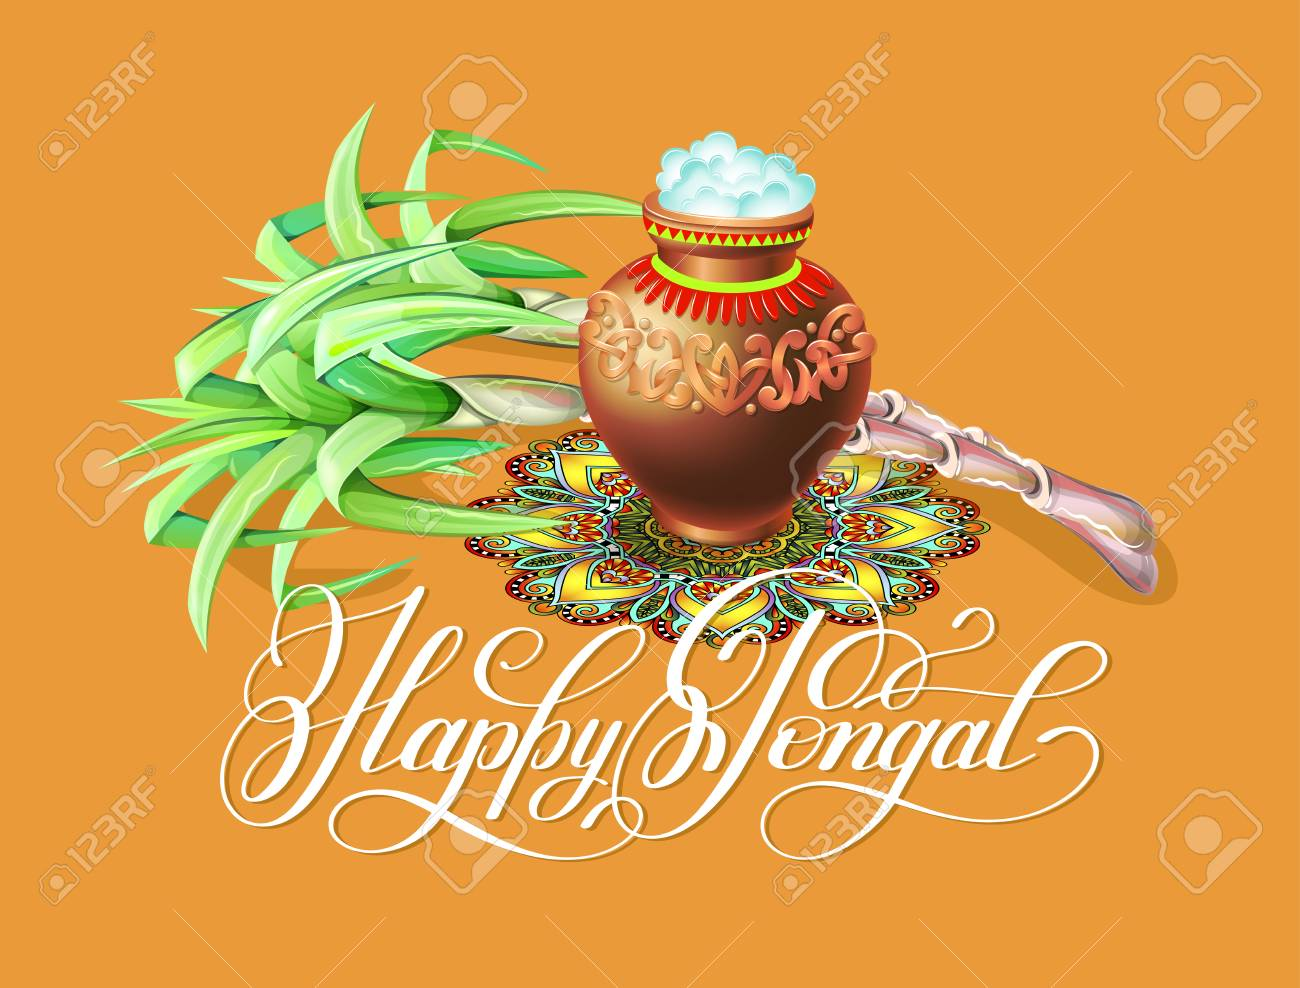 Happy pongal greeting card to south indian winter holiday design happy pongal greeting card to south indian winter holiday design stock vector 95047542 m4hsunfo